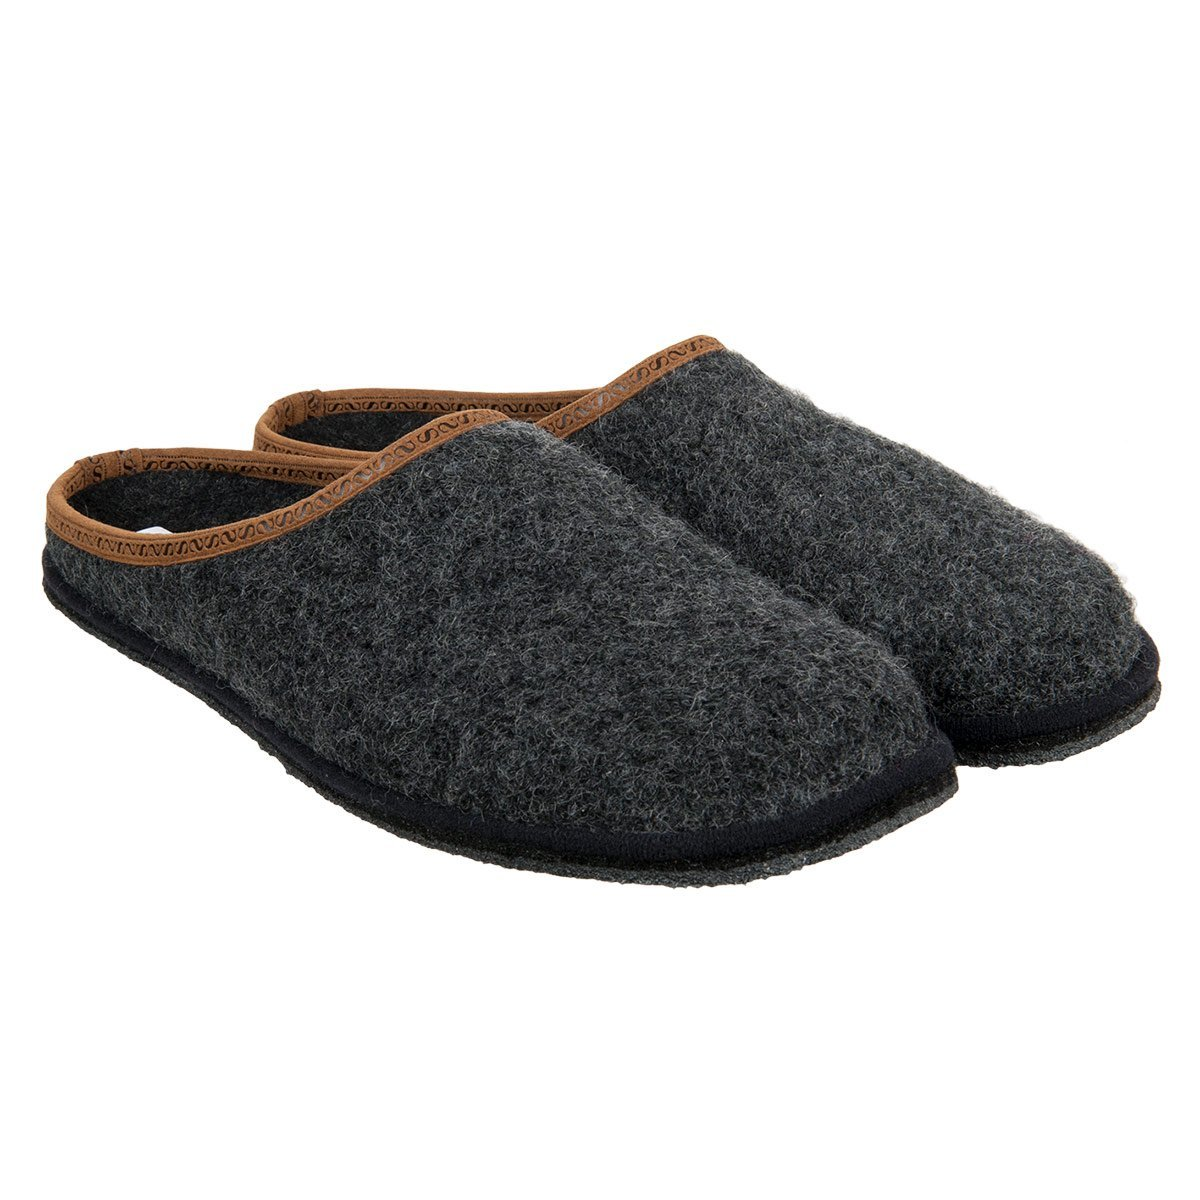 man with non slip sole in wool